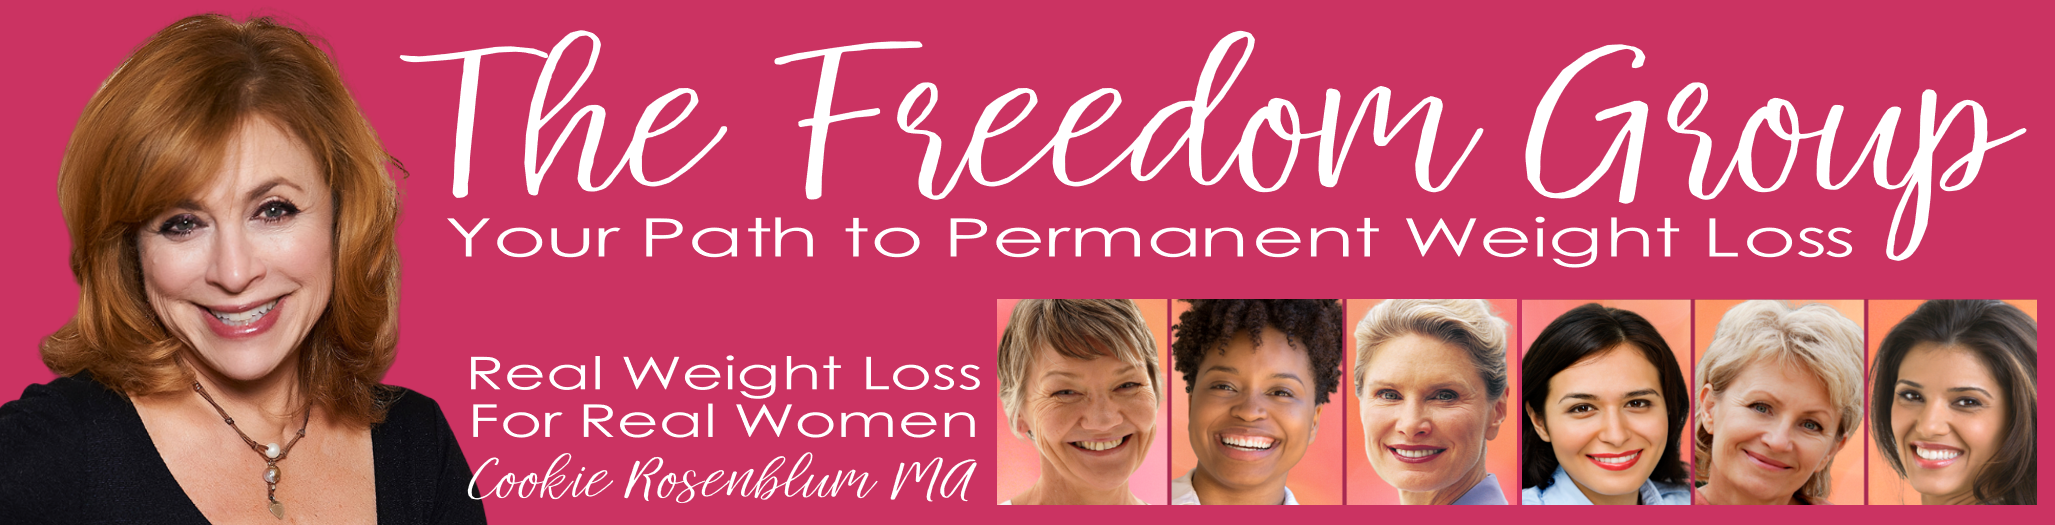 Weight Loss Made Real: The Freedom Group